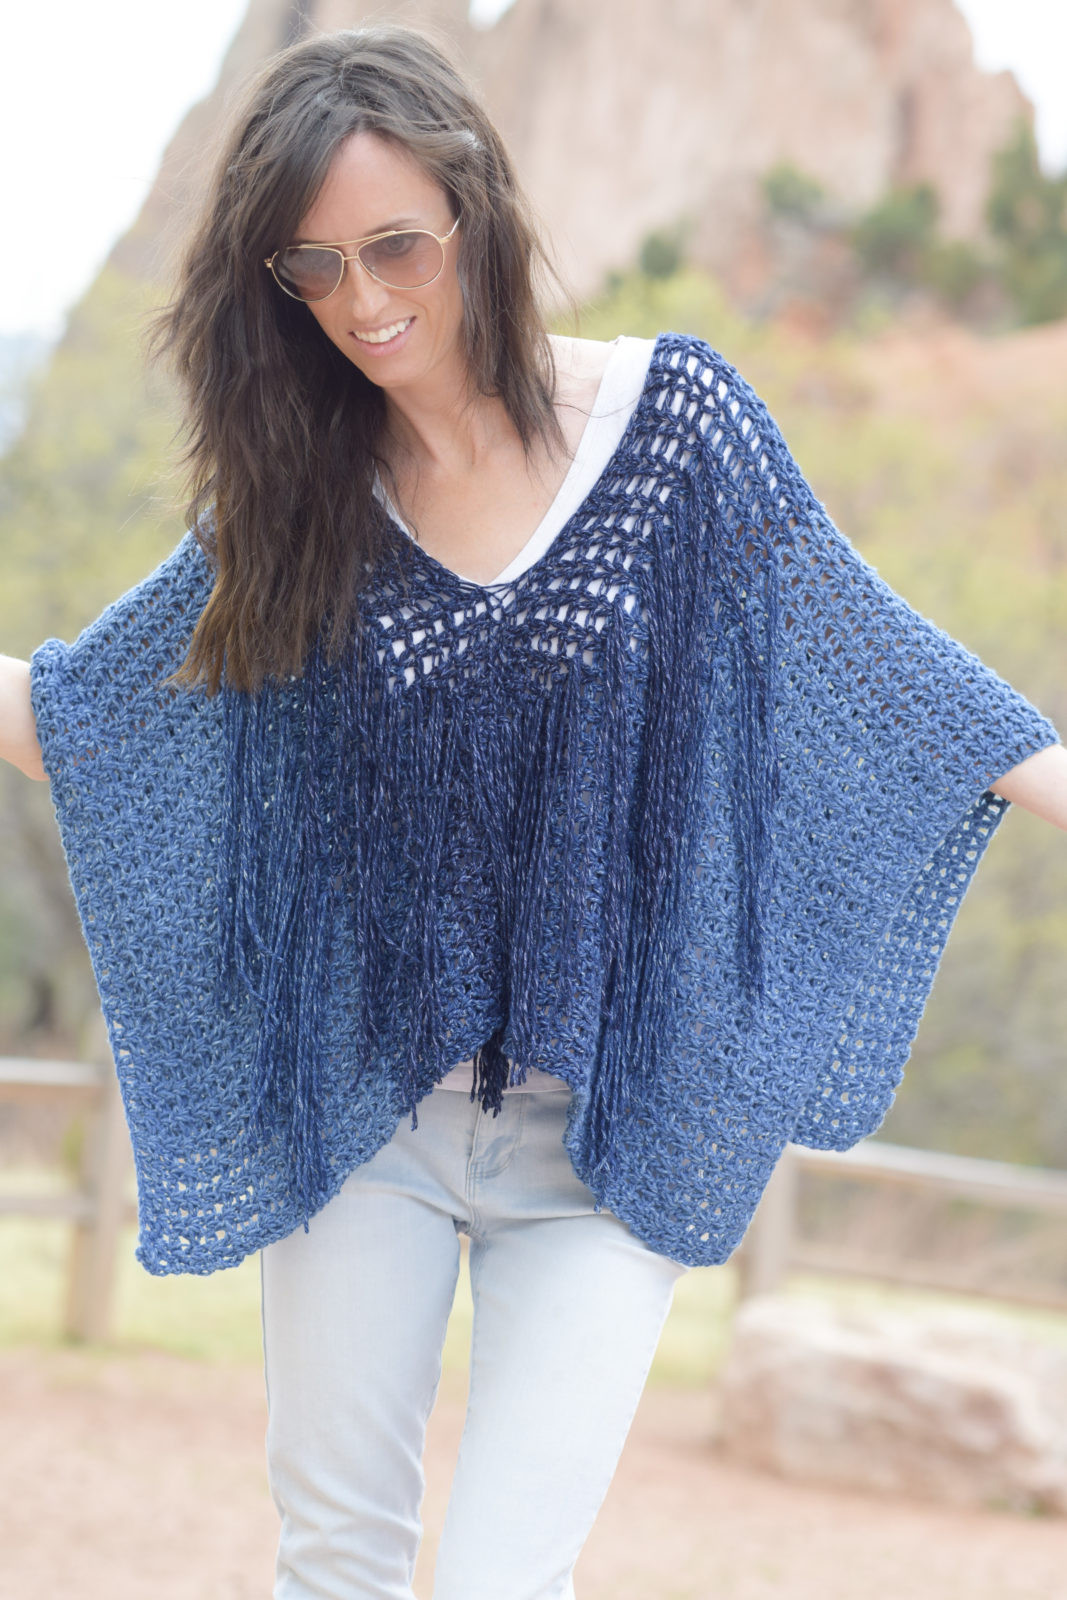 Poncho Crochet Pattern Lovely Azul V Mesh Easy Crochet Poncho Pattern – Mama In A Stitch Of Attractive 42 Ideas Poncho Crochet Pattern